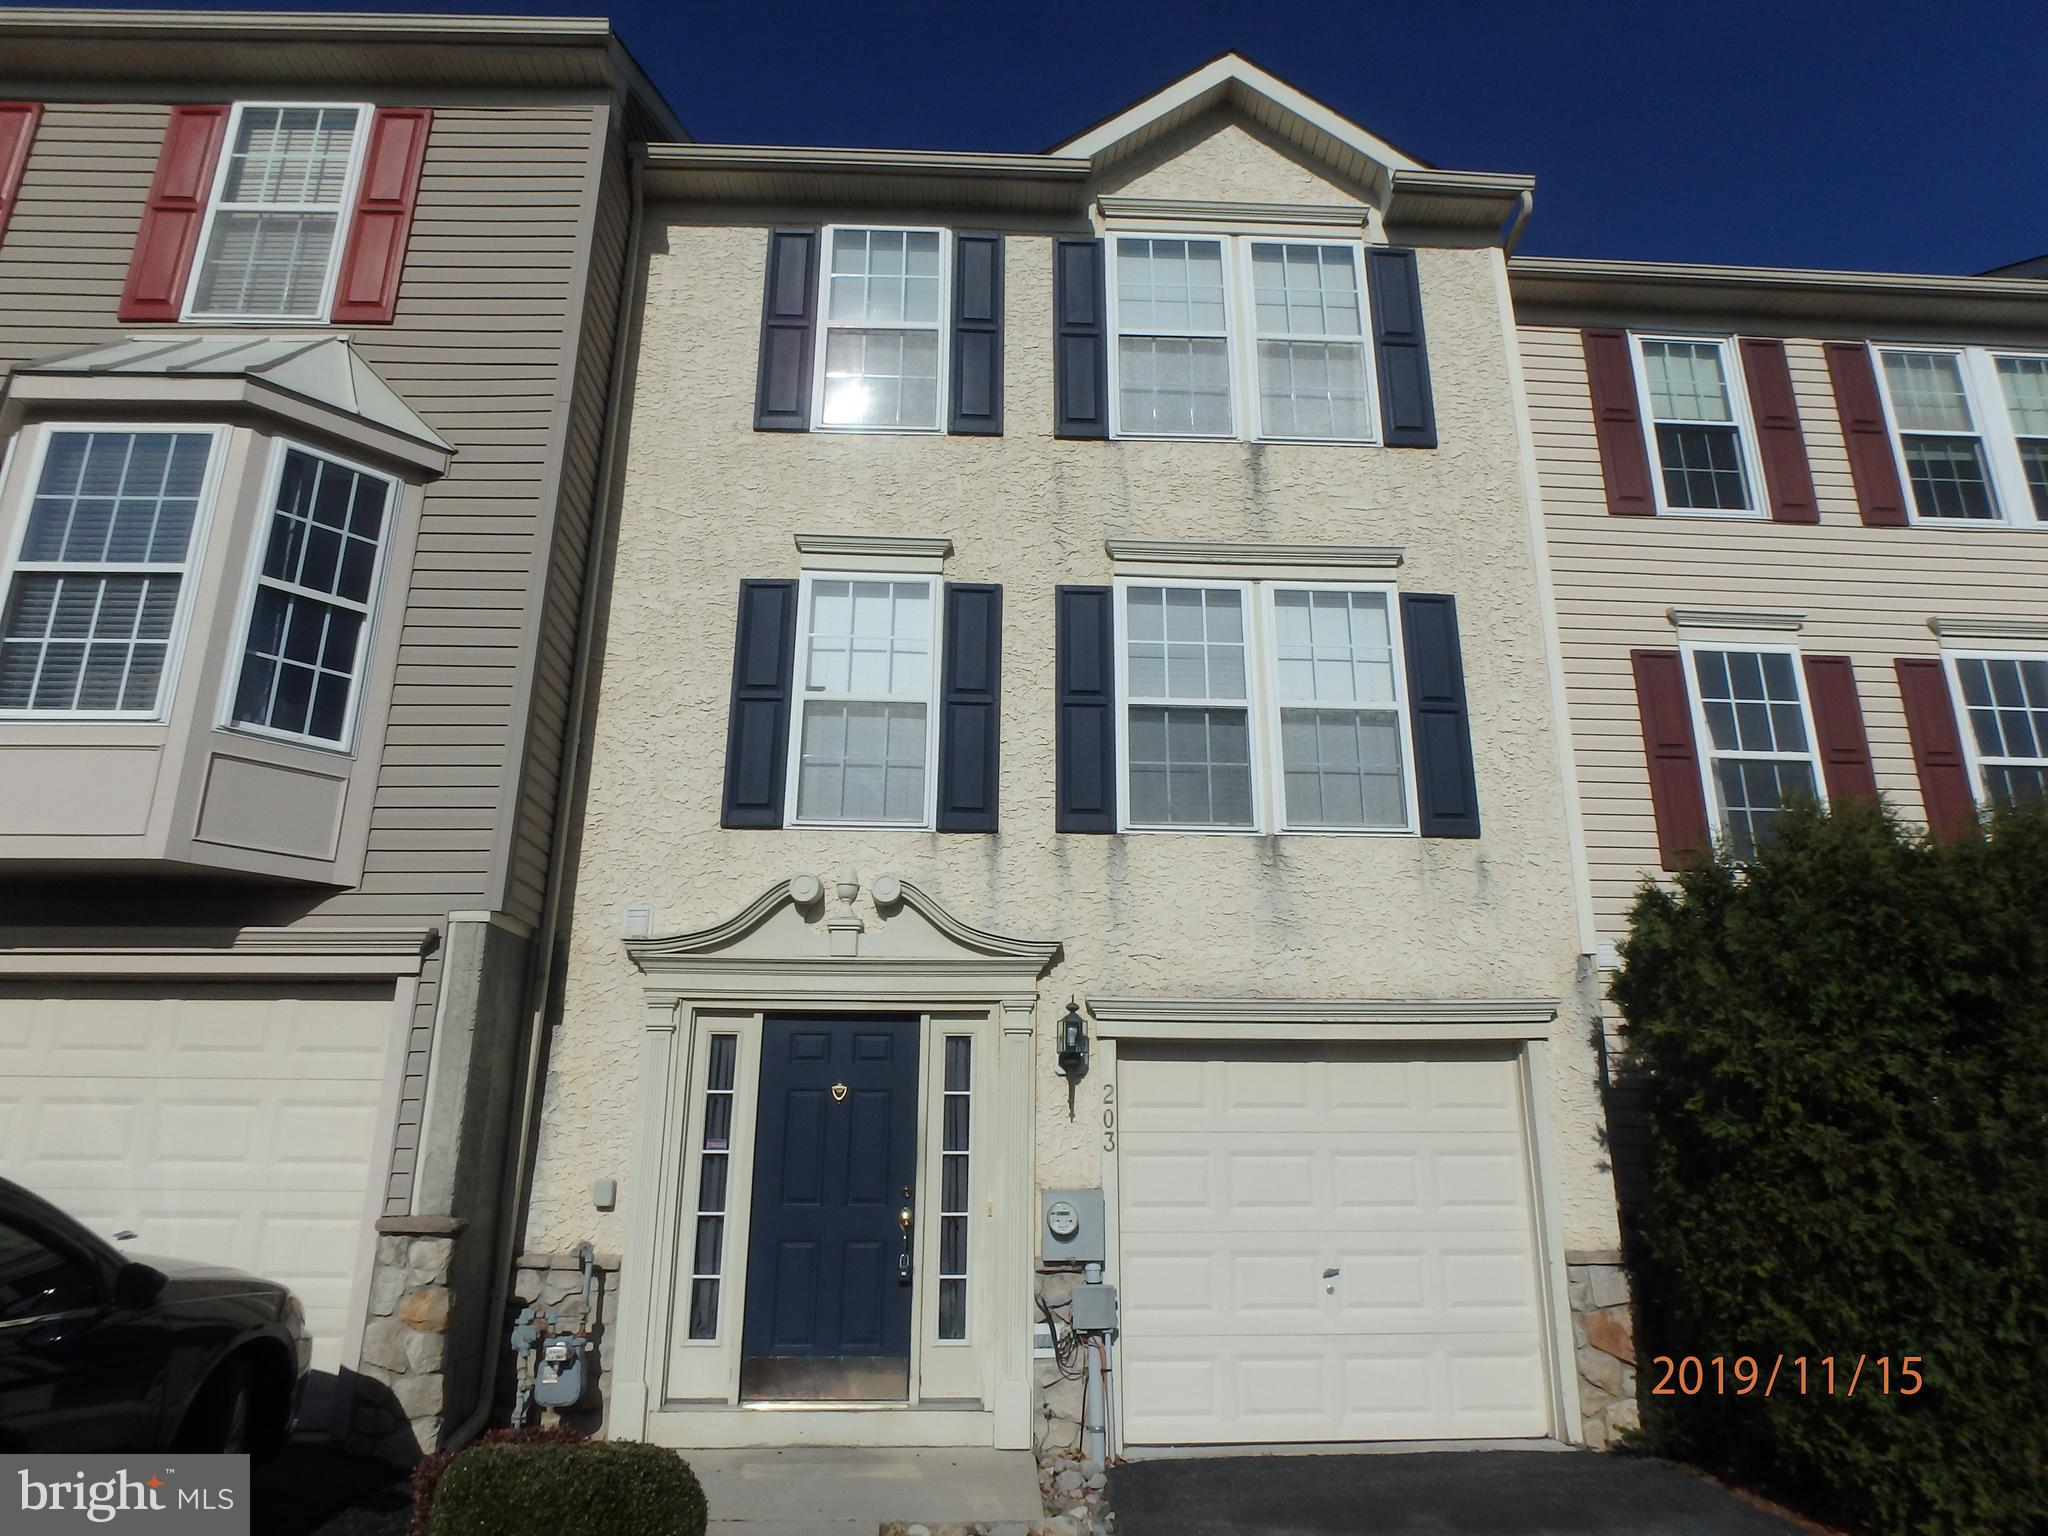 203 FOX TRAIL, PARKESBURG, PA 19365